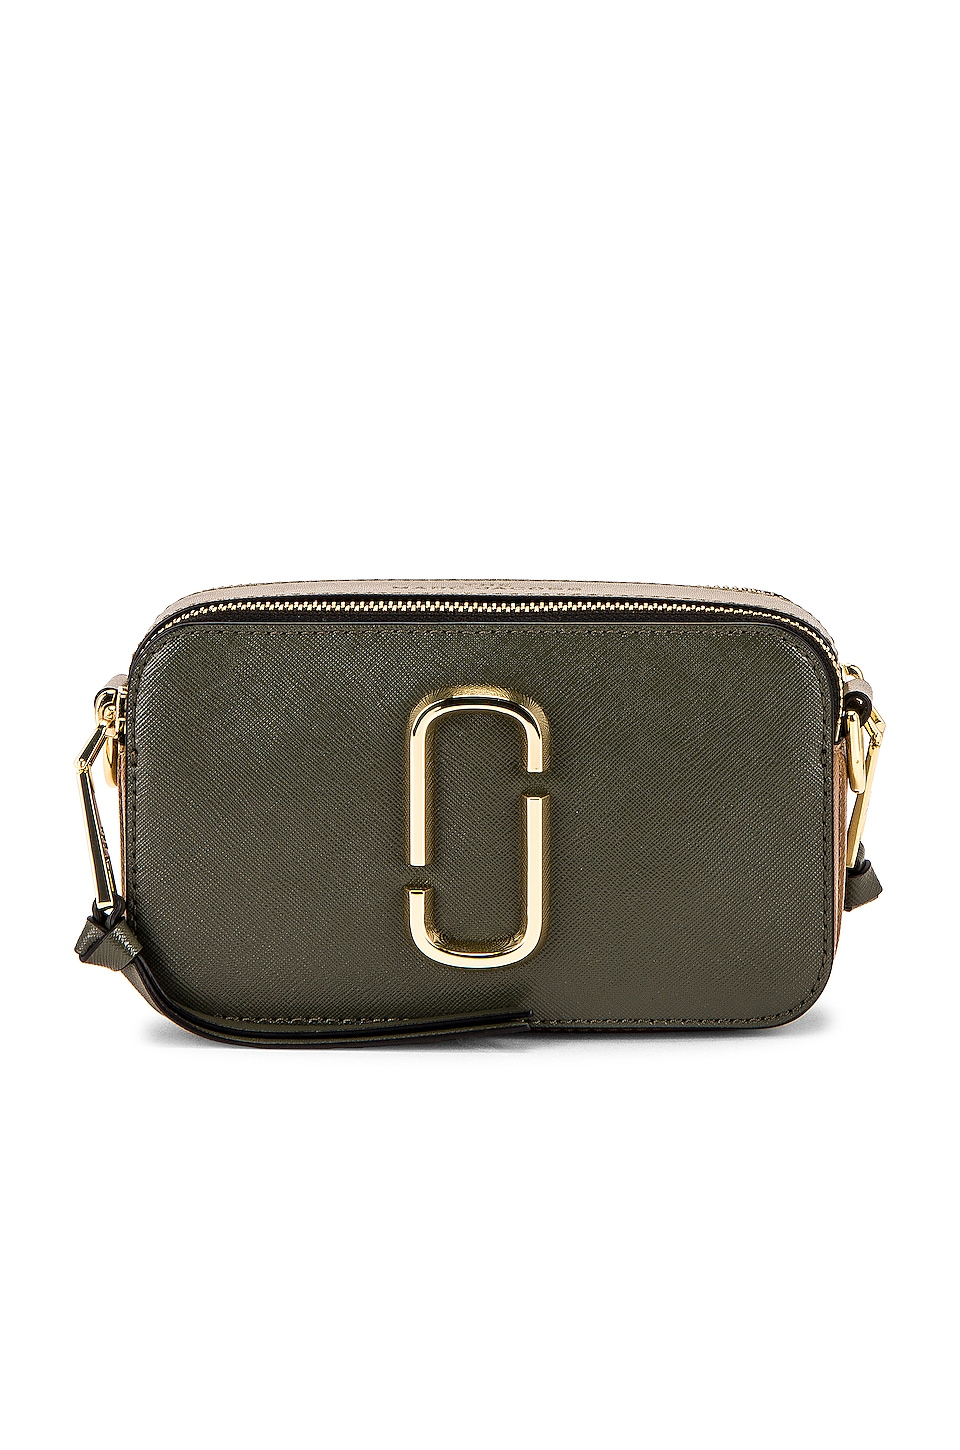 Marc Jacobs green sling bag one of the top-10 best -fashion gift-ideas for women.